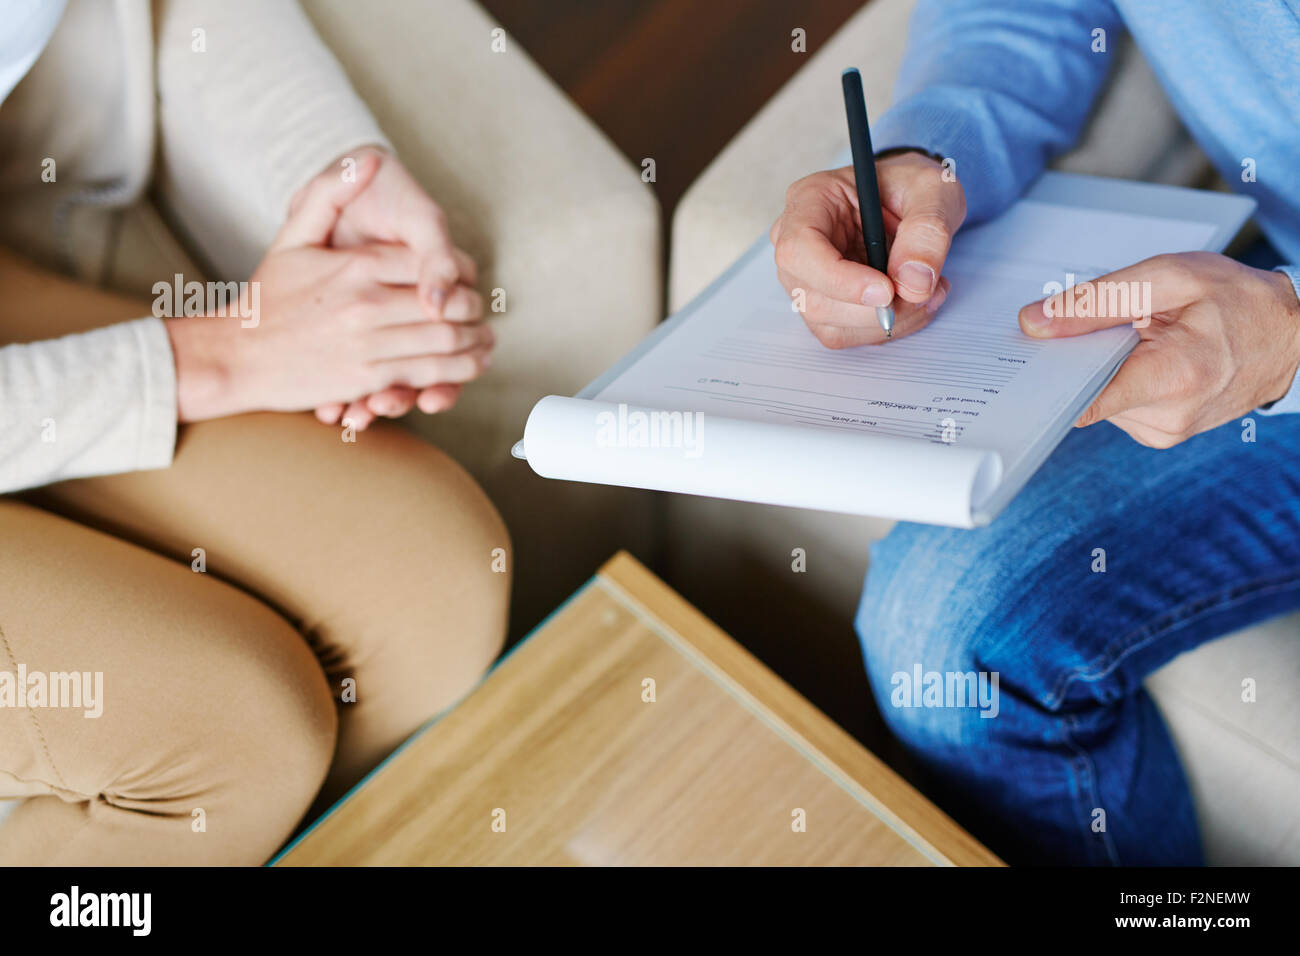 Hands of psychiatrist filling in medical document with patient near by - Stock Image